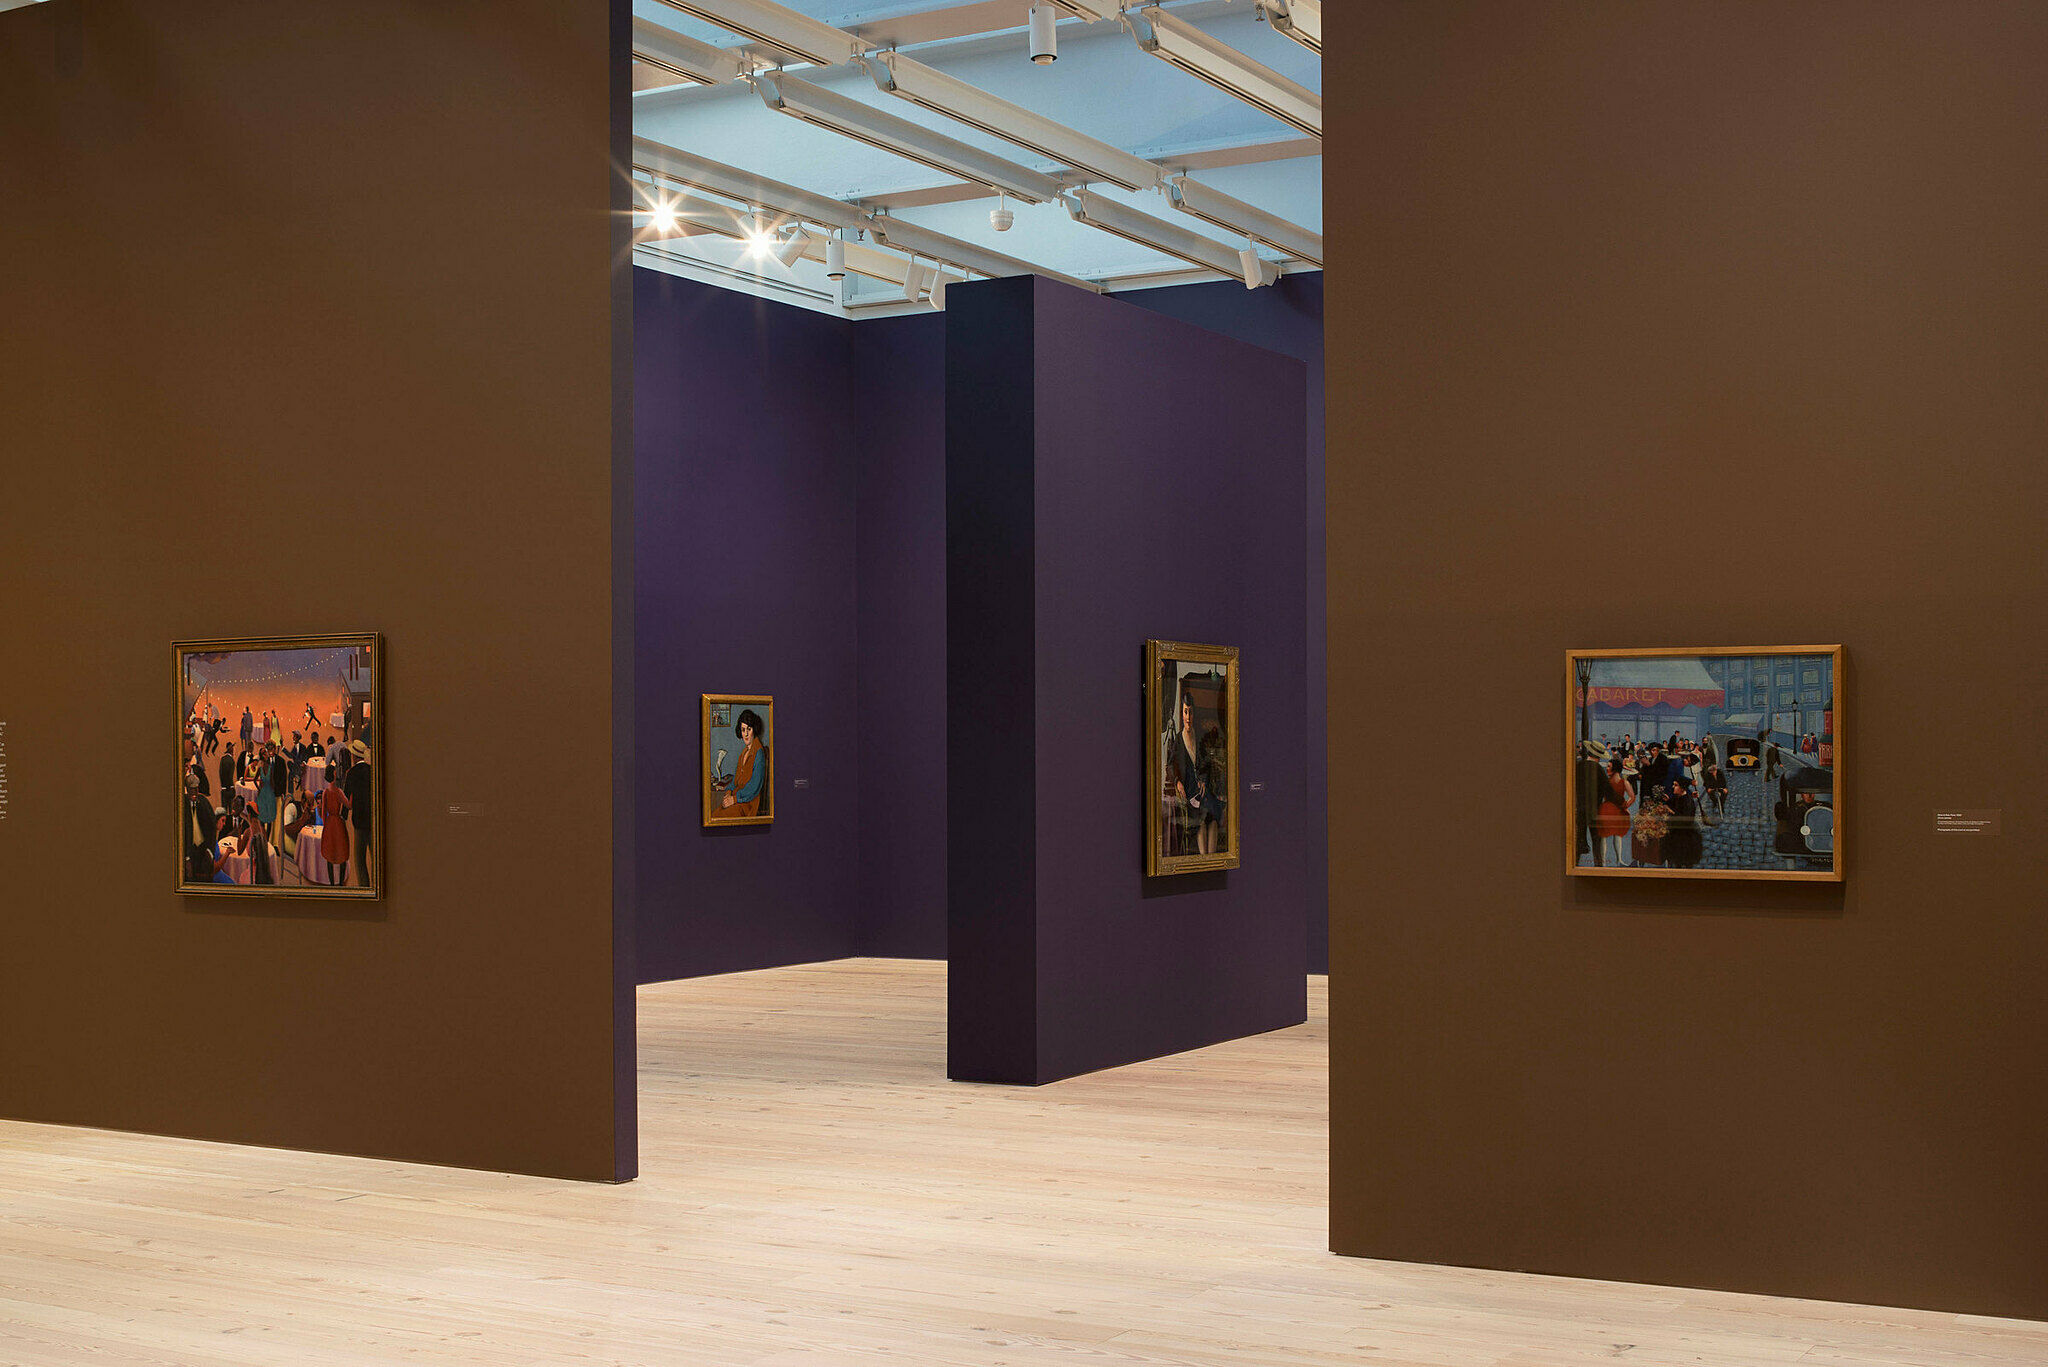 A view of the art gallery with paintings by Archibald Motley.